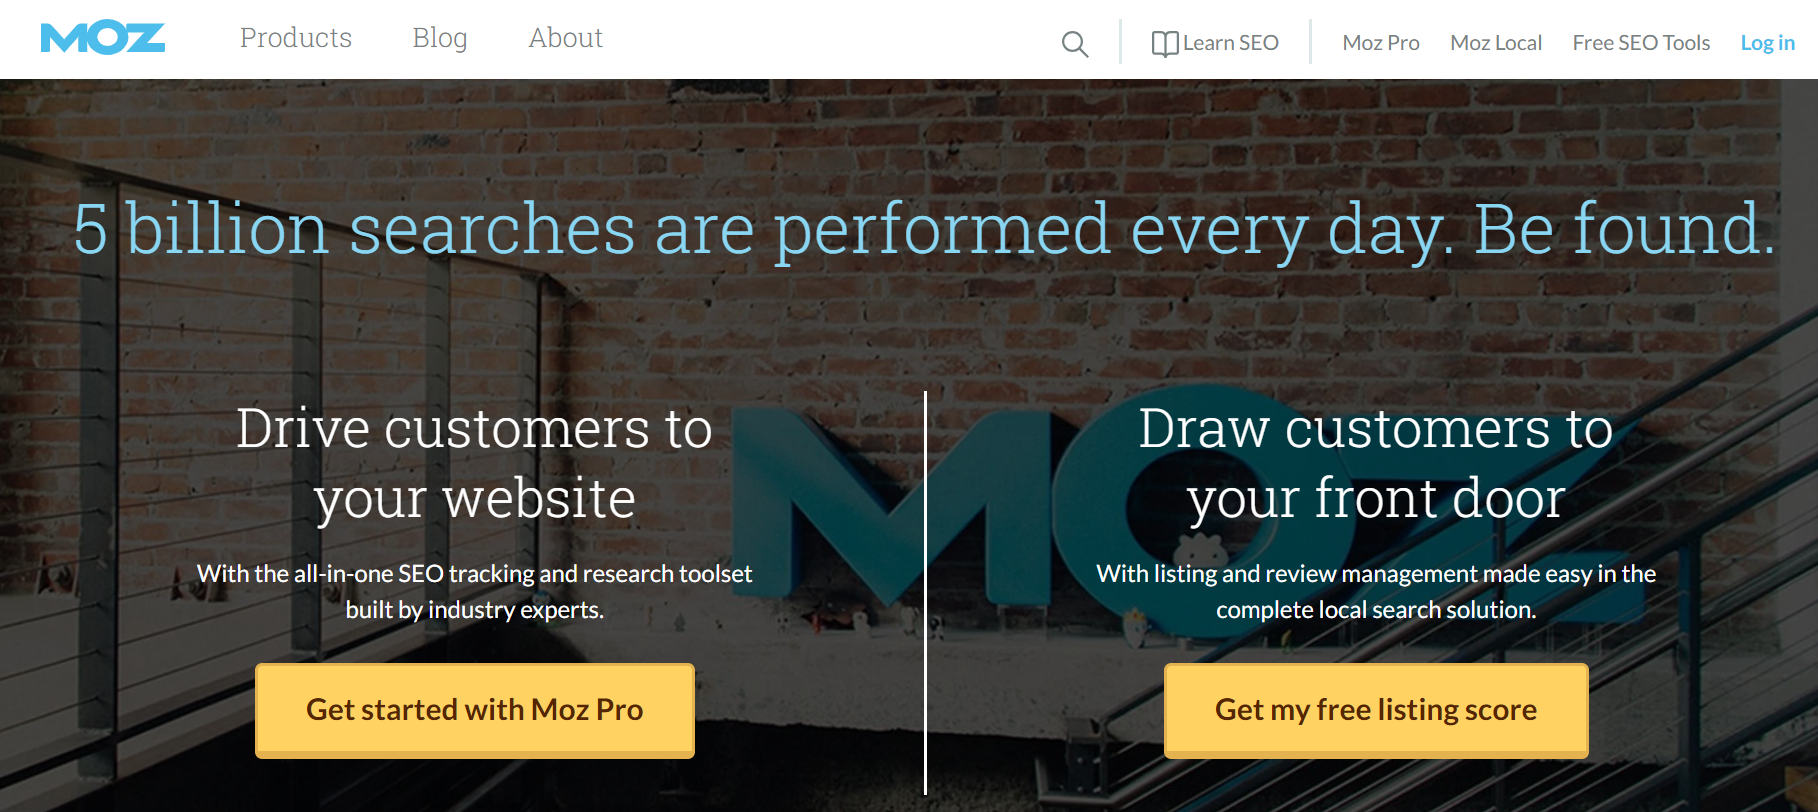 How Rand Fishkin Went From $500,000 In Debt To Building Moz